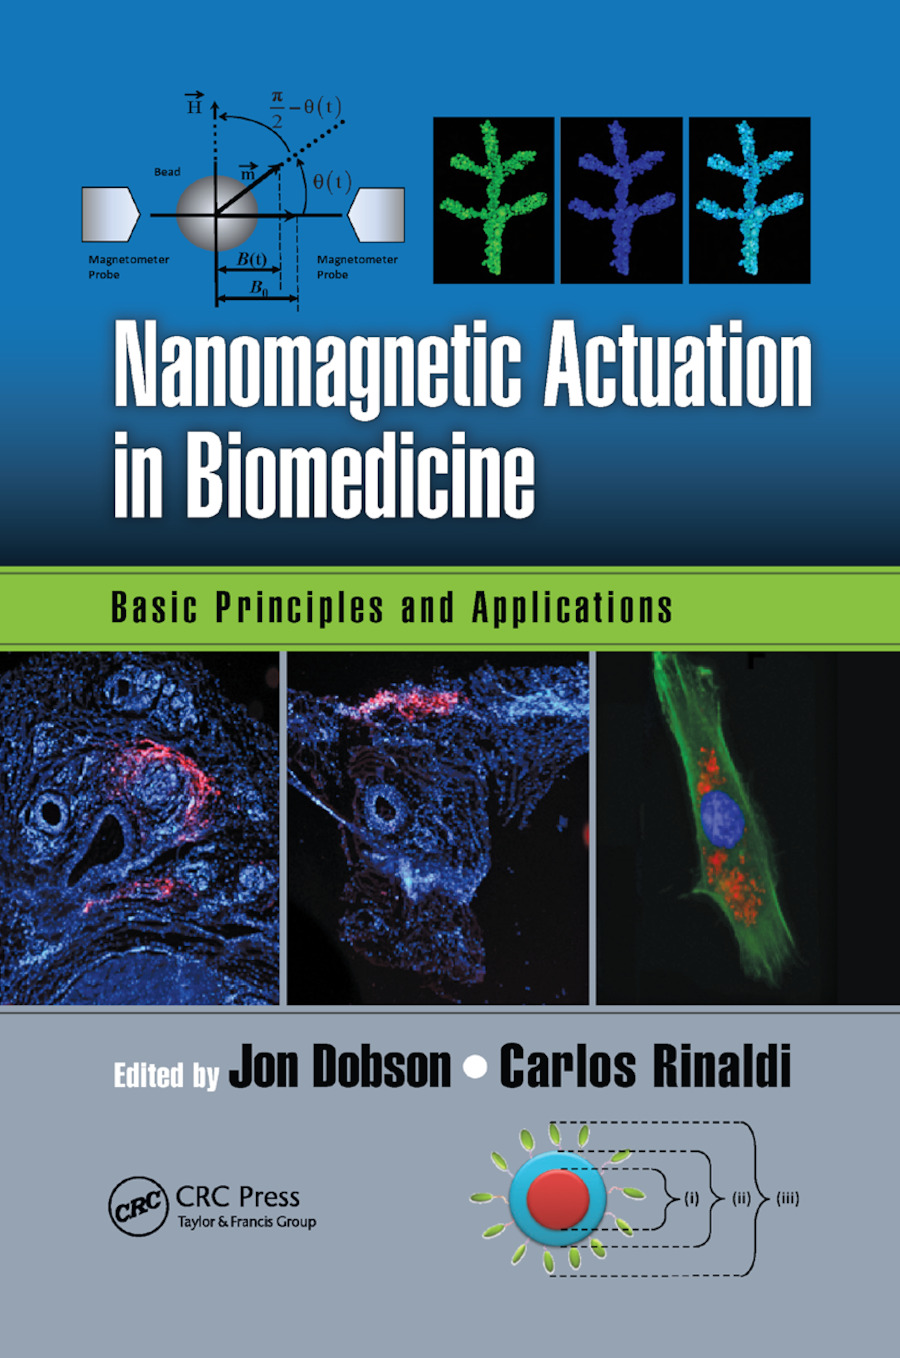 Nanomagnetic Actuation in Biomedicine: Basic Principles and Applications book cover